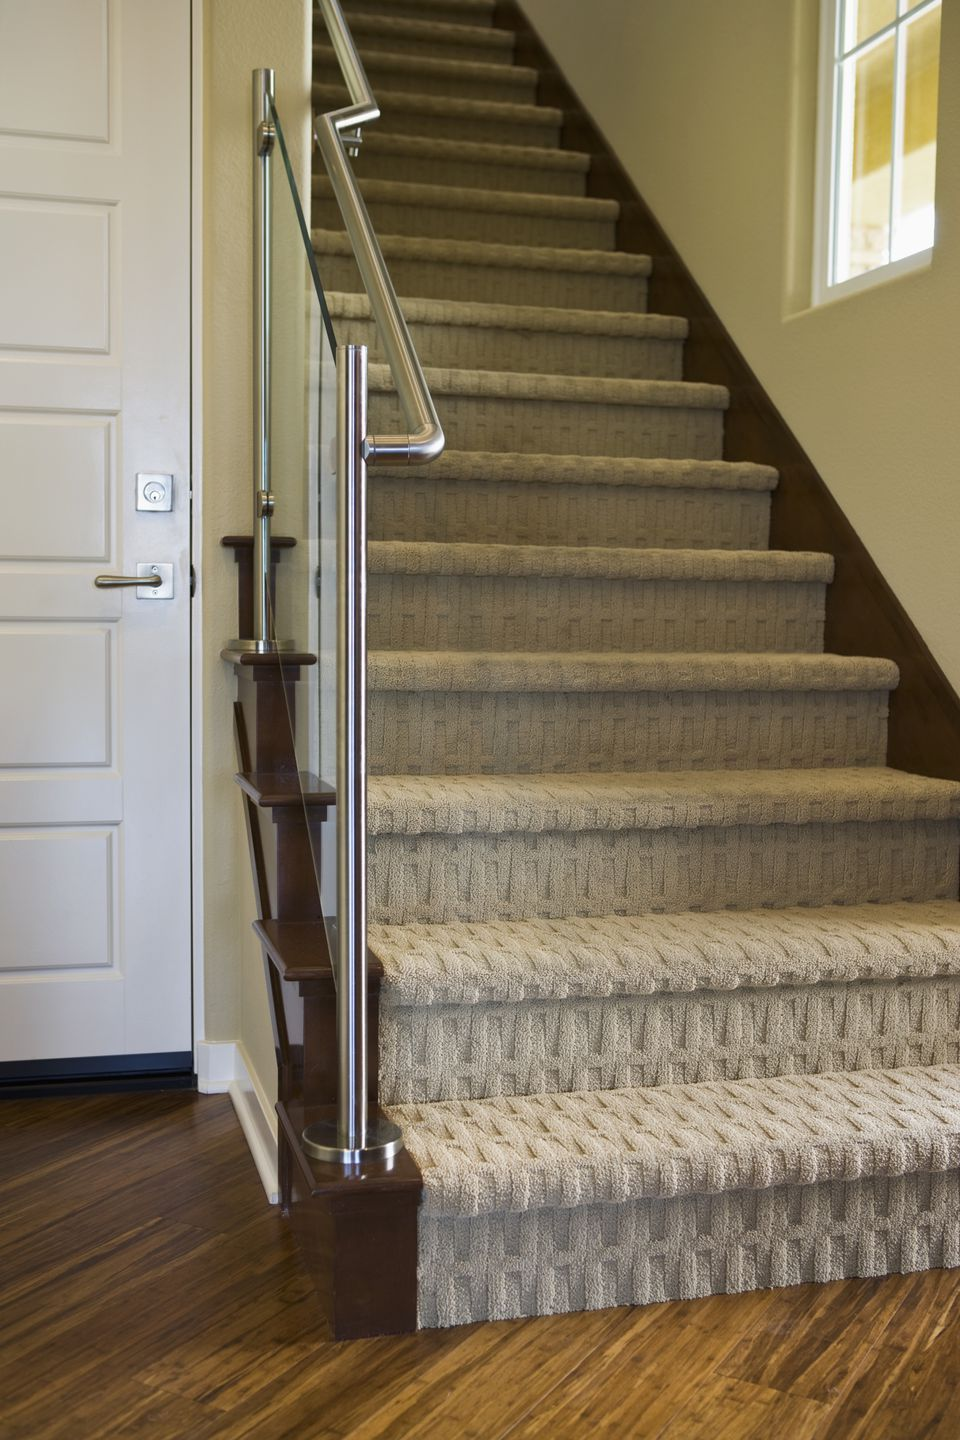 Image result for carpeted stairs with wood floors